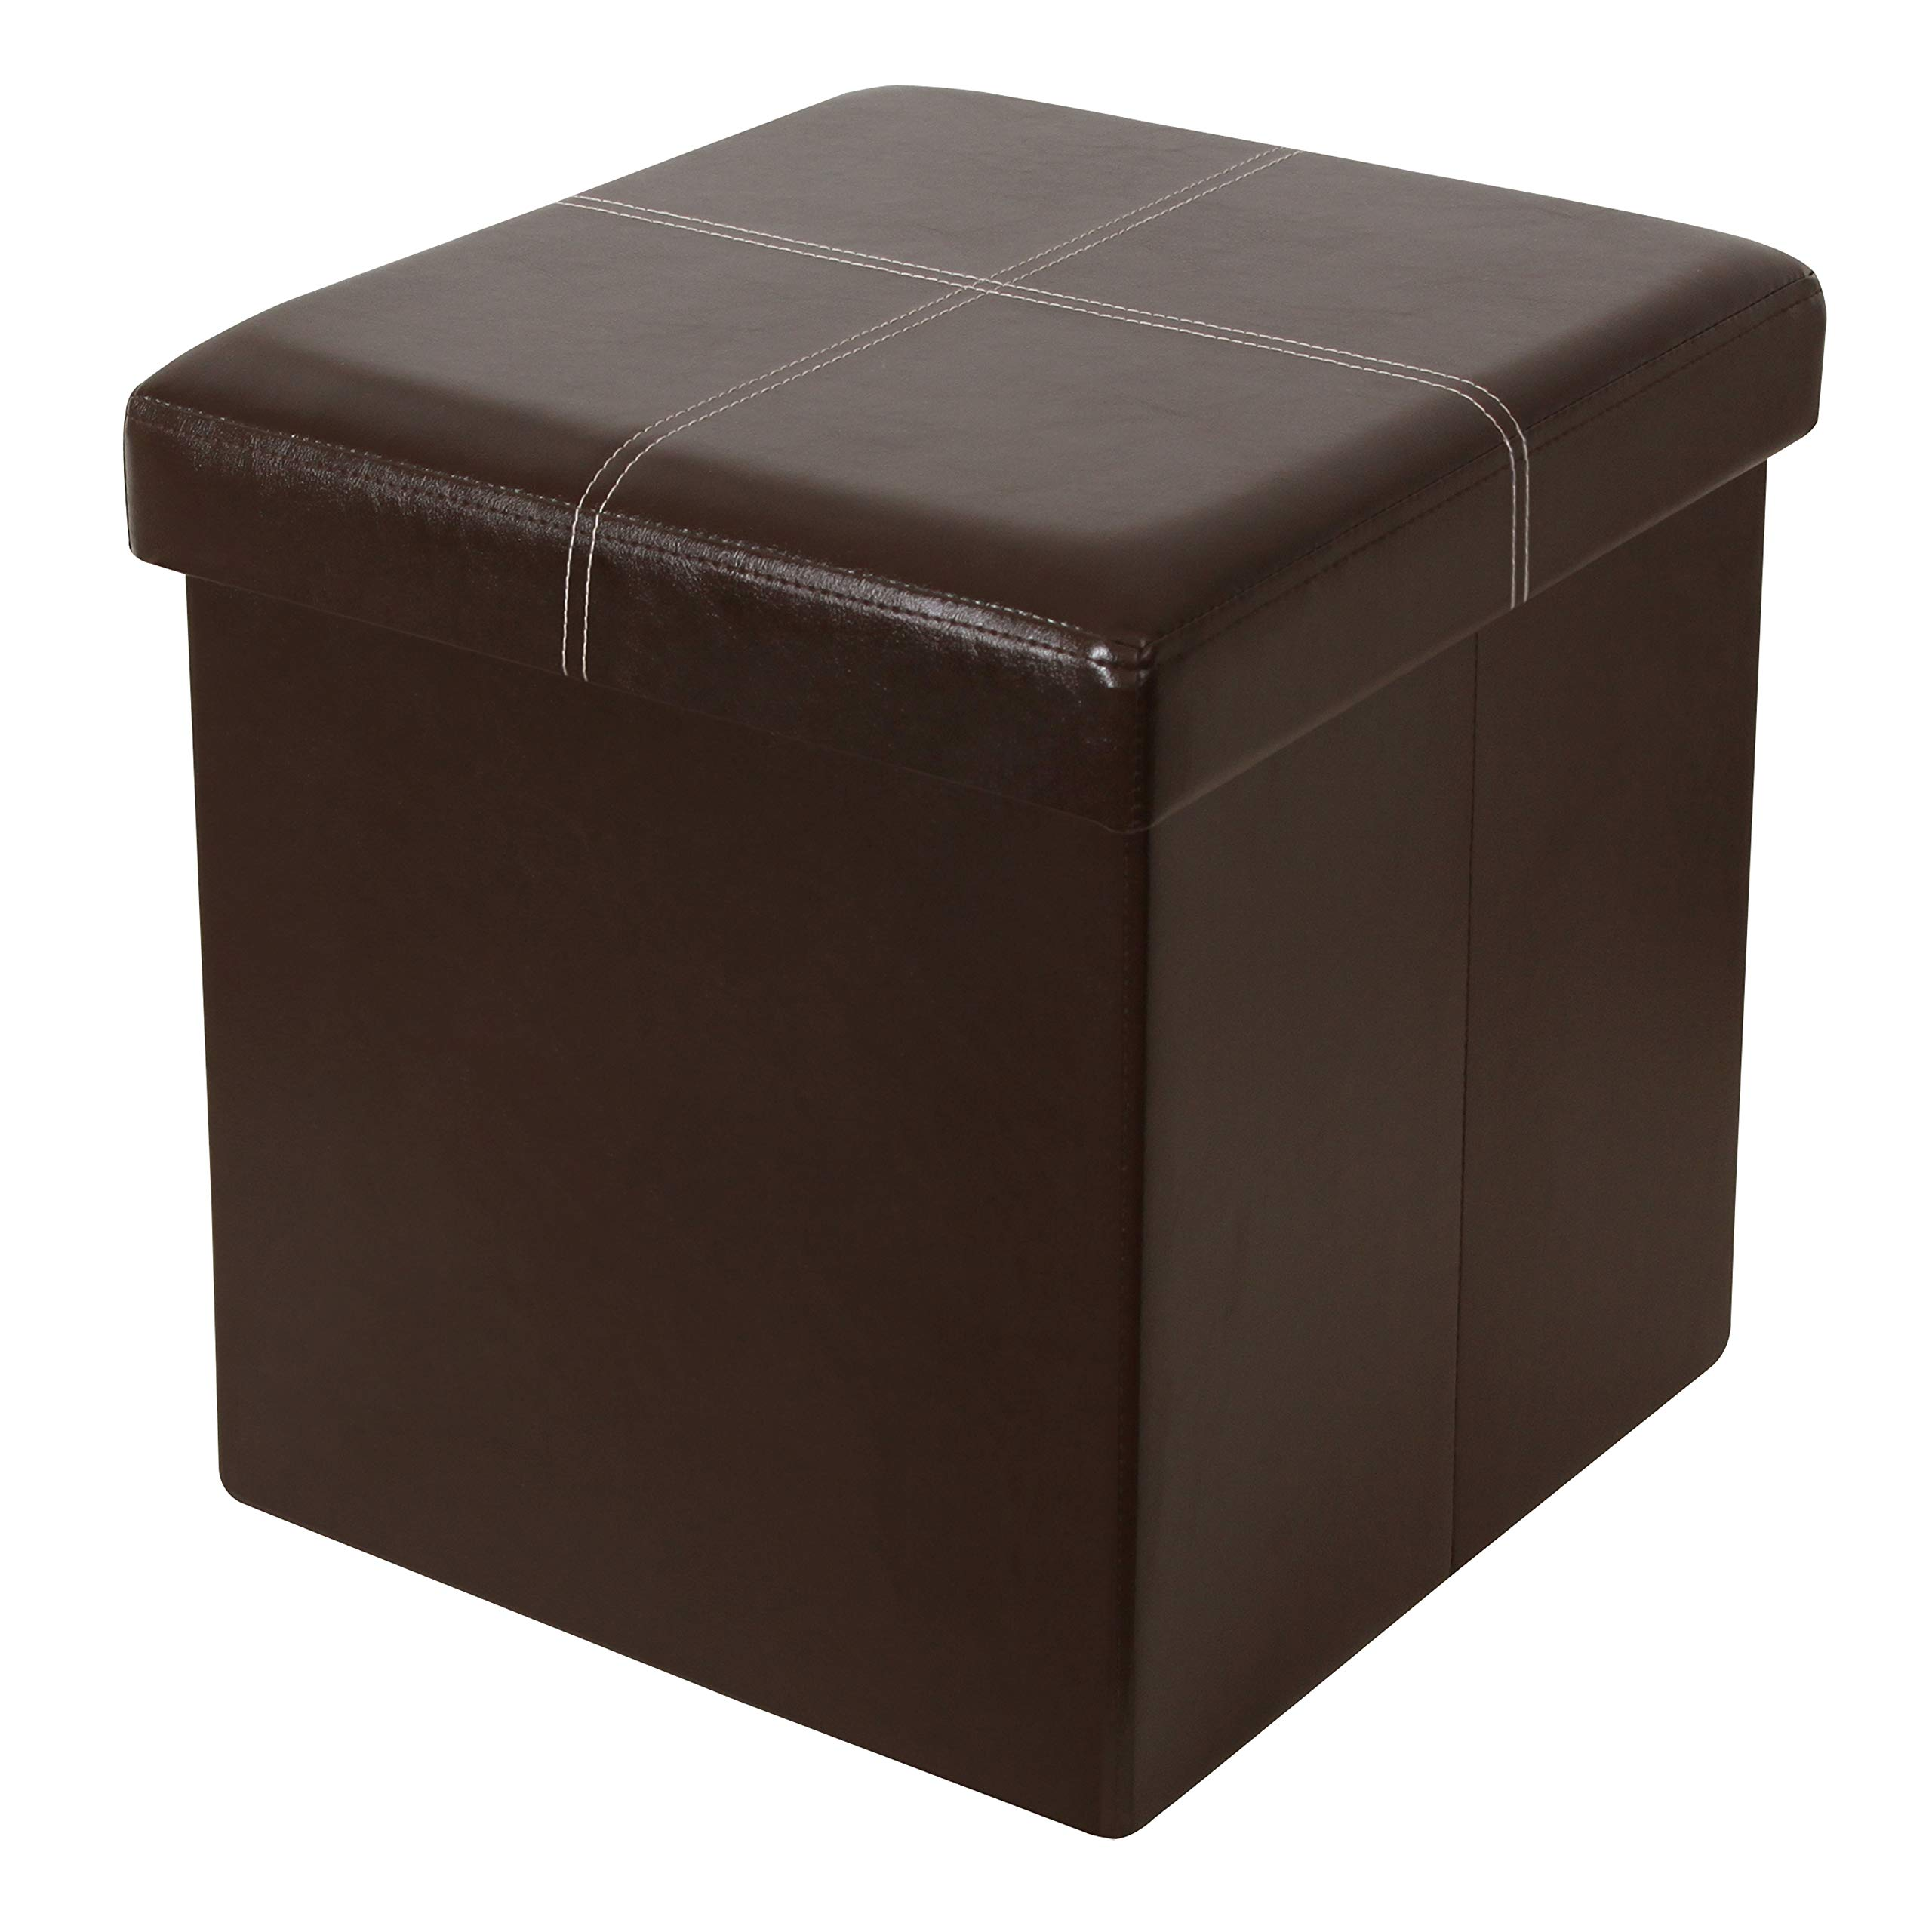 ITIDY Ottoman,Folding Storage Ottoman Cube Bench, Foot Rest Stool, Puppy Step, Storage Chest, Faux Leather, Brown by ITIDY